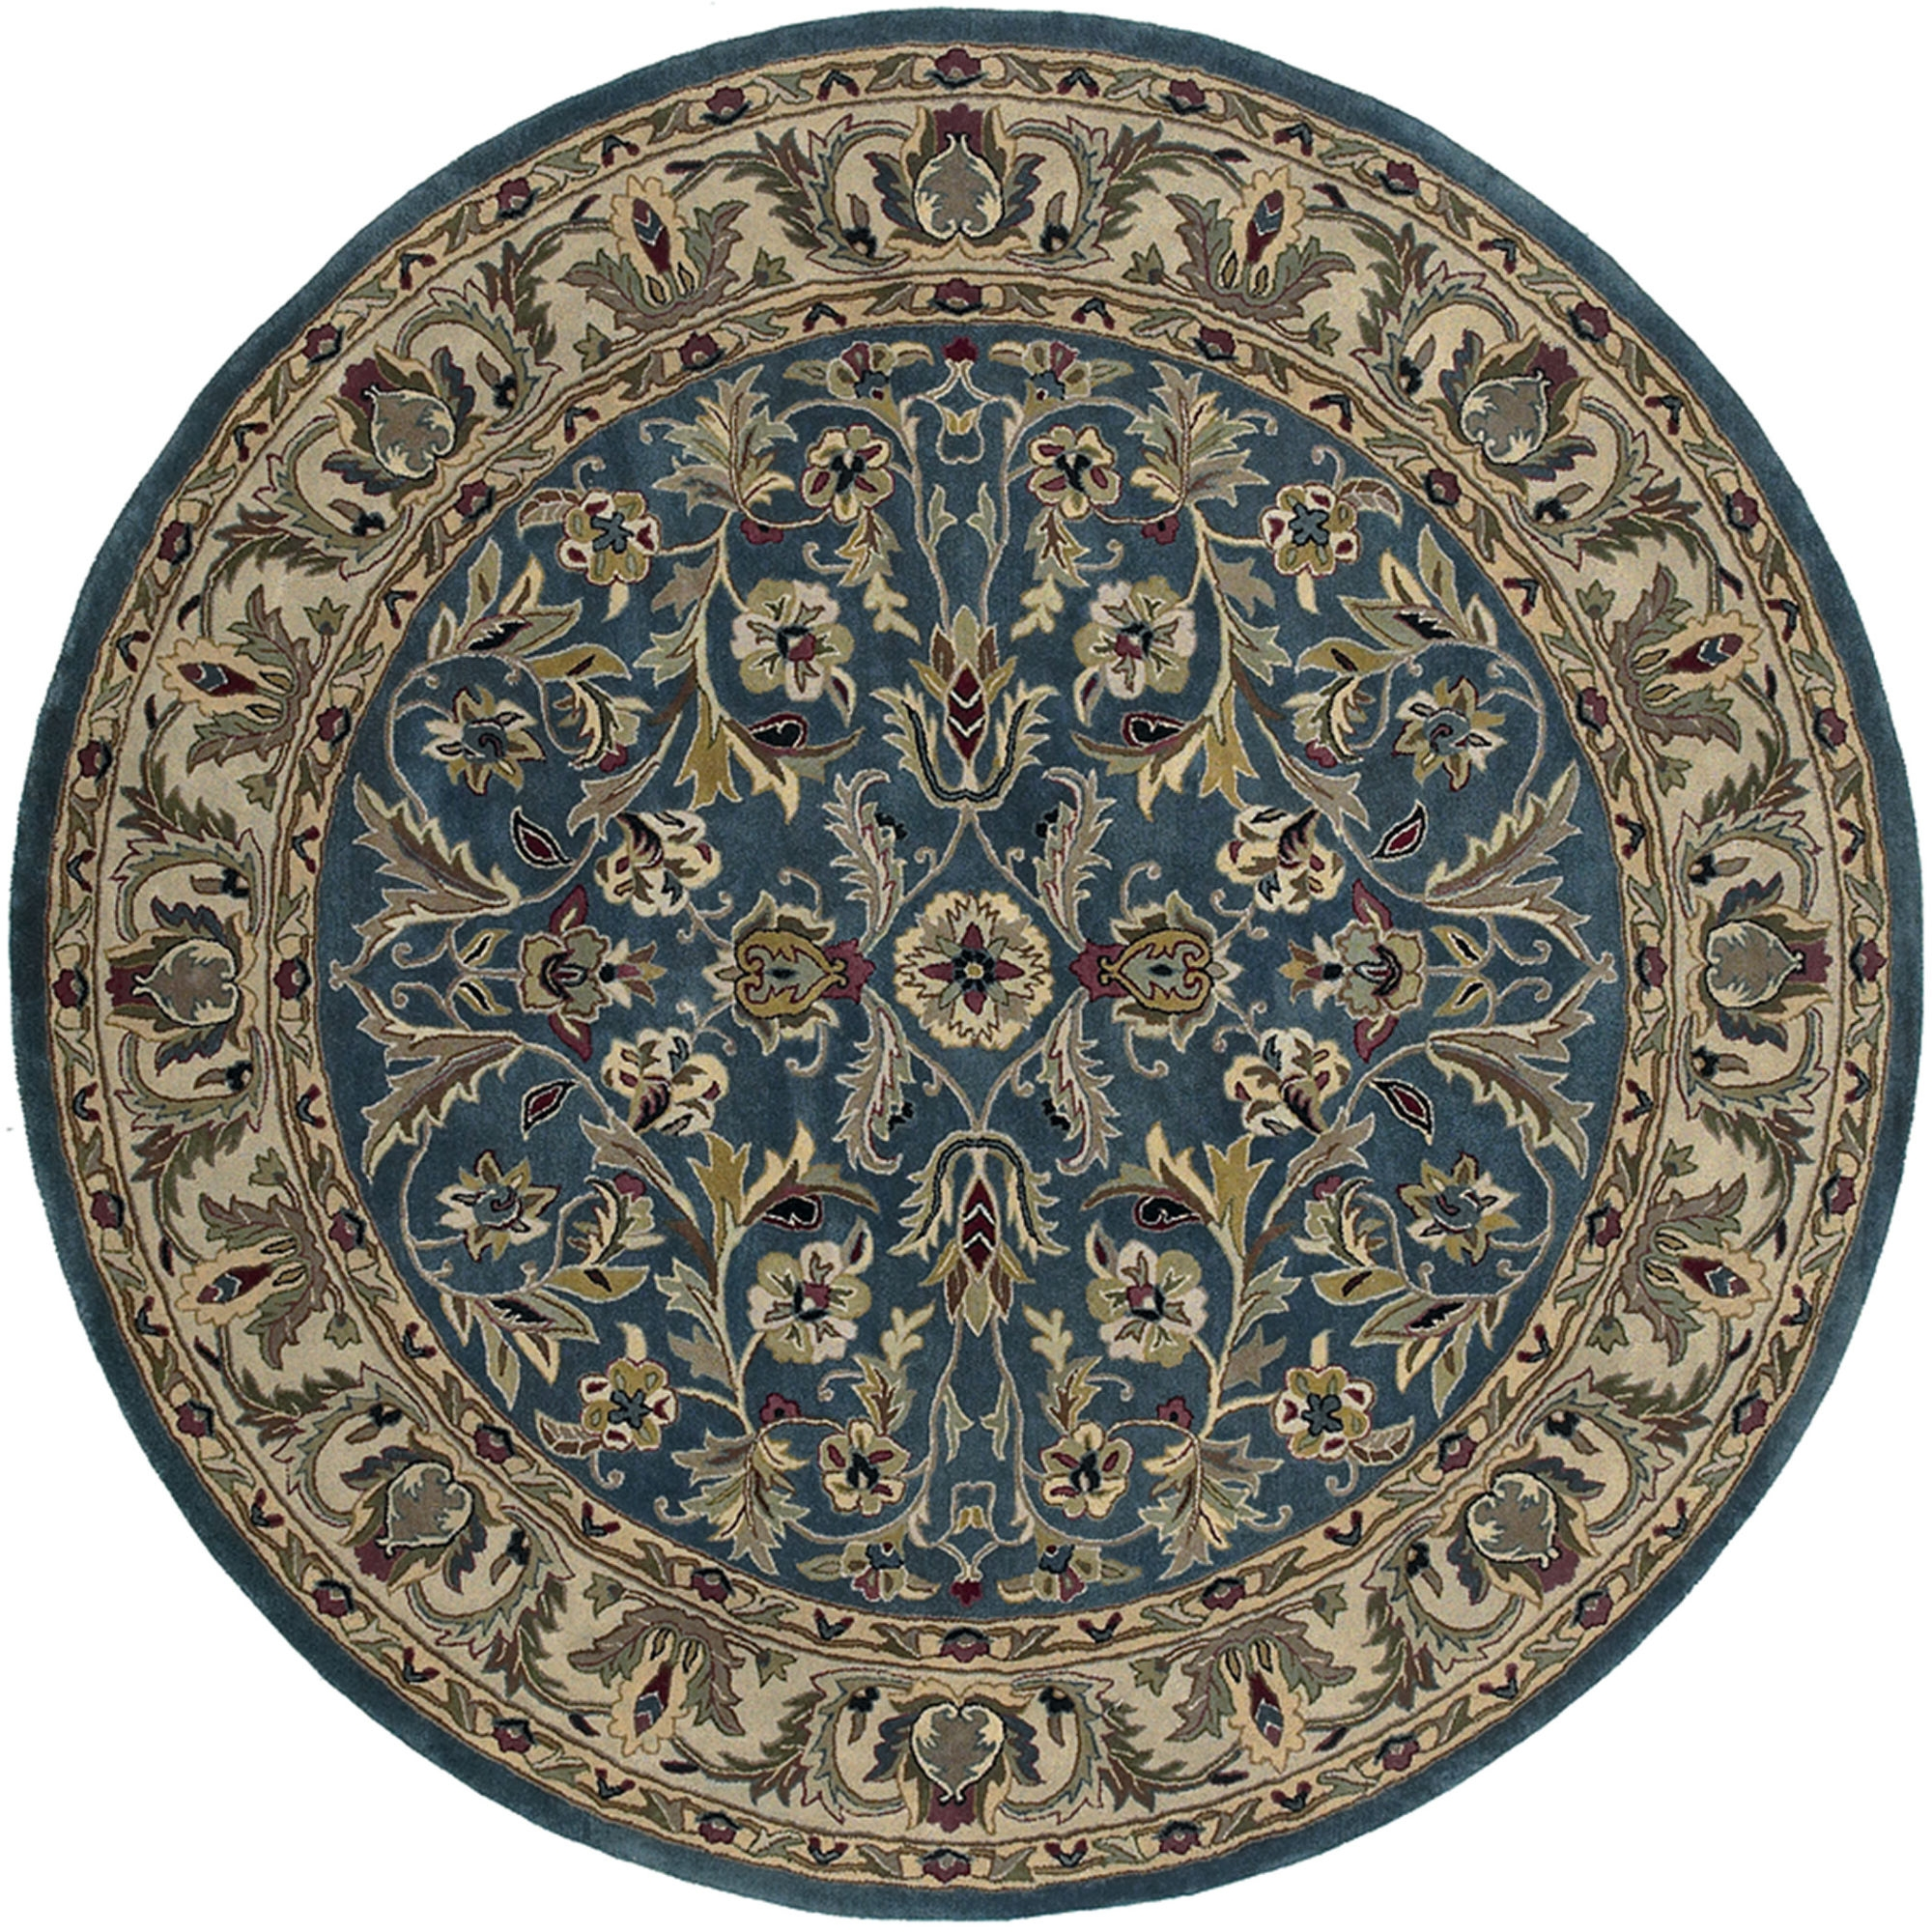 Round Carpet Rugs Home Decors Collection Pertaining To Round Mats Rugs (Image 10 of 15)